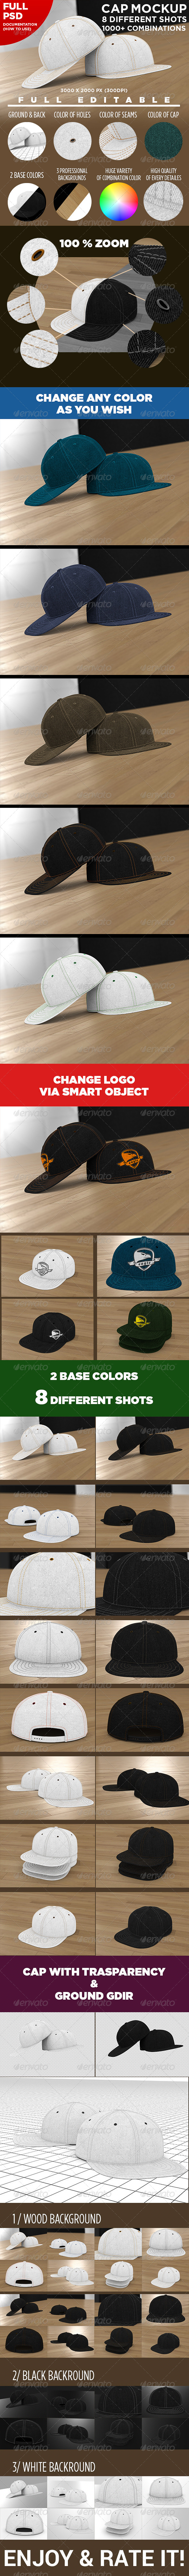 GraphicRiver Professional Baseball Cap Mock-up 7143332